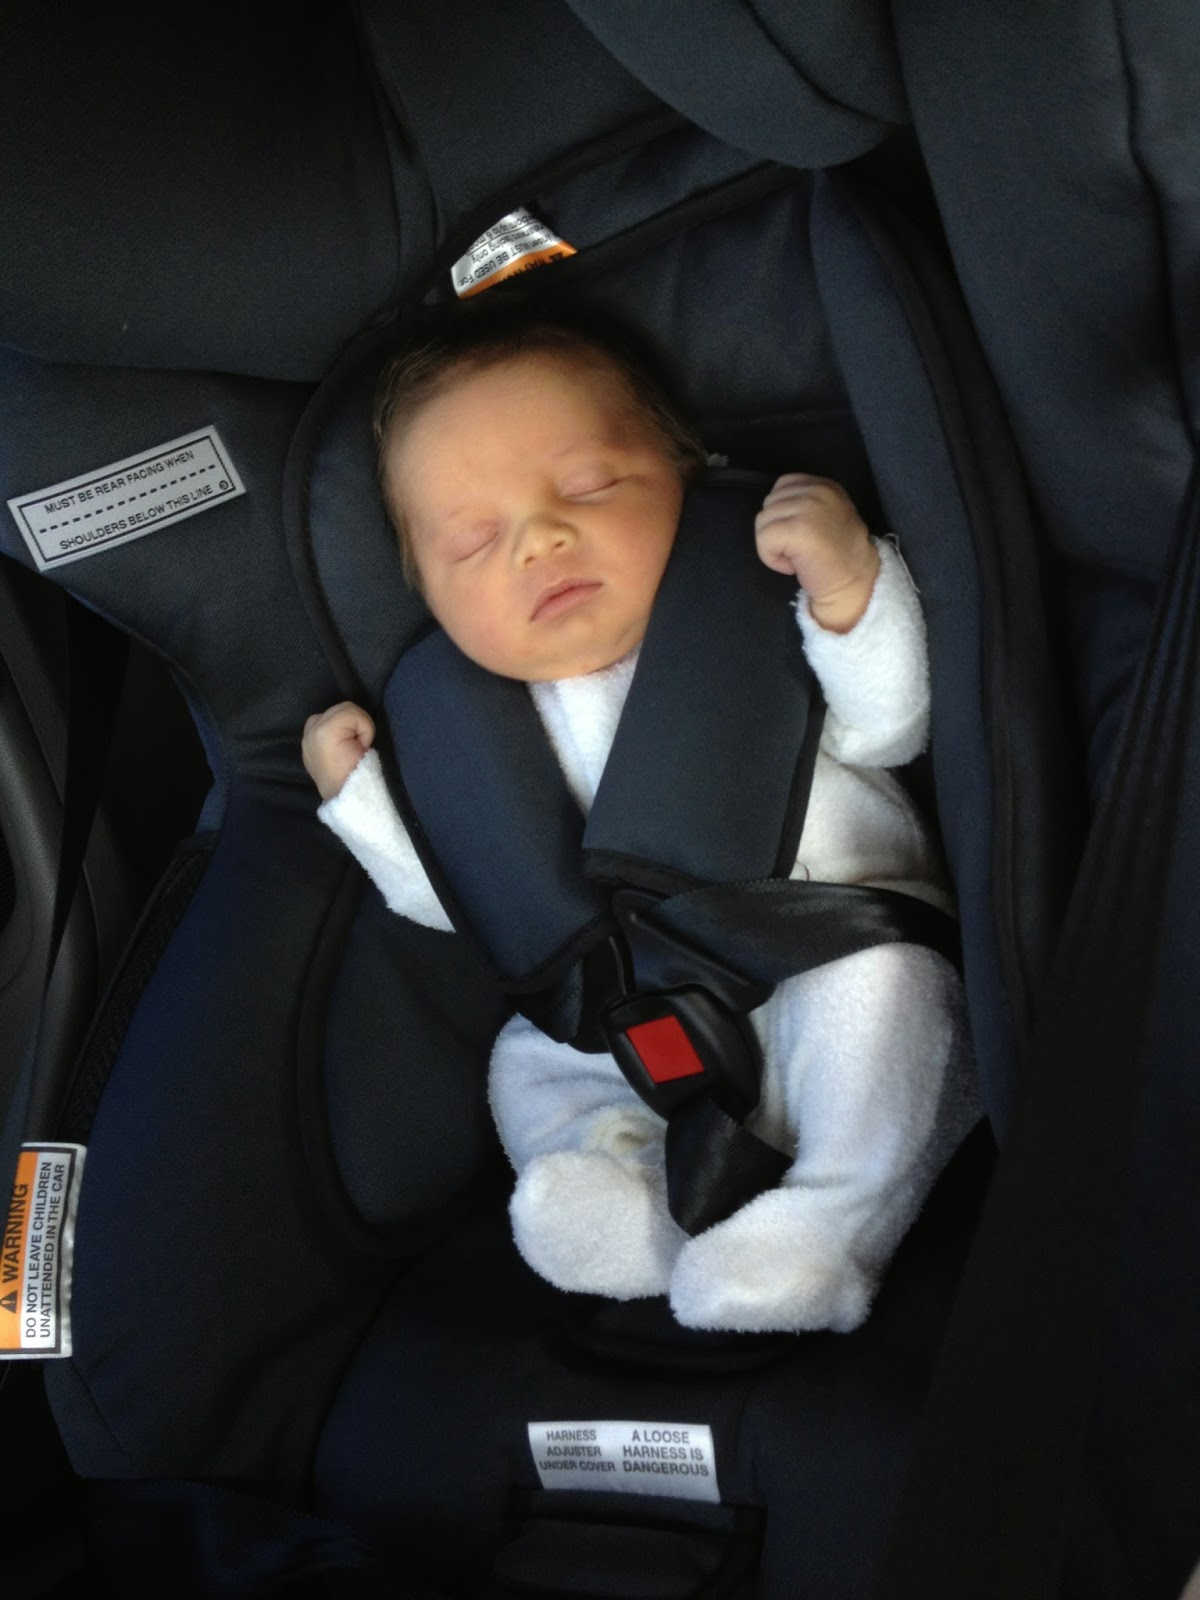 Baby Car Seats At Target Breathe Gently Shopping With Target Australia Car Safety